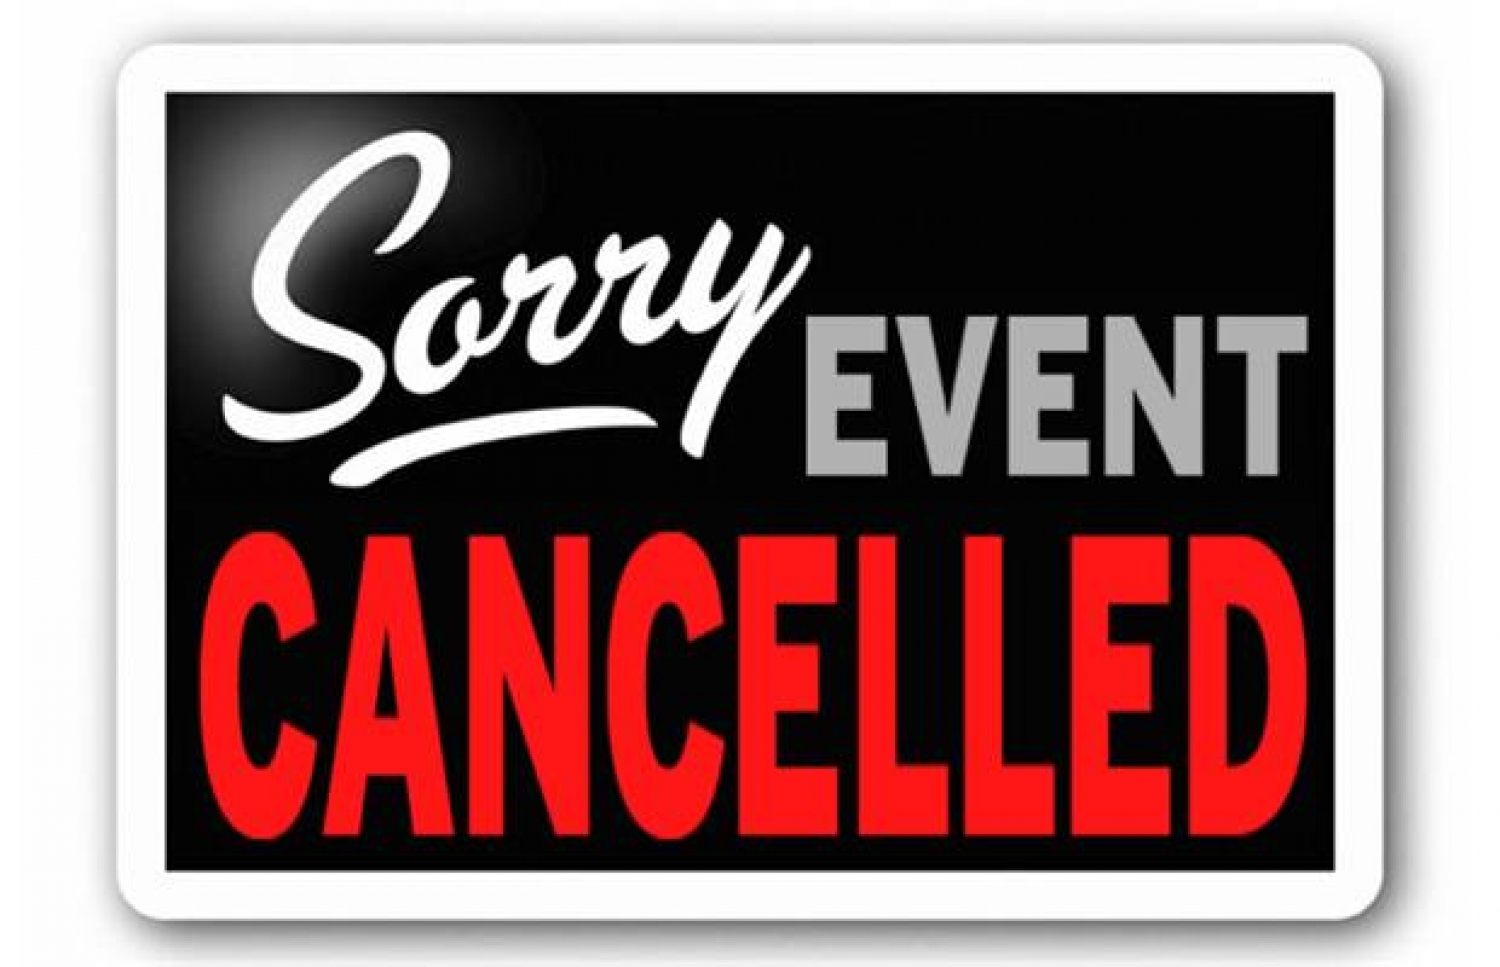 Forever ... In Motion Cancelled Thursday January 11th 2018